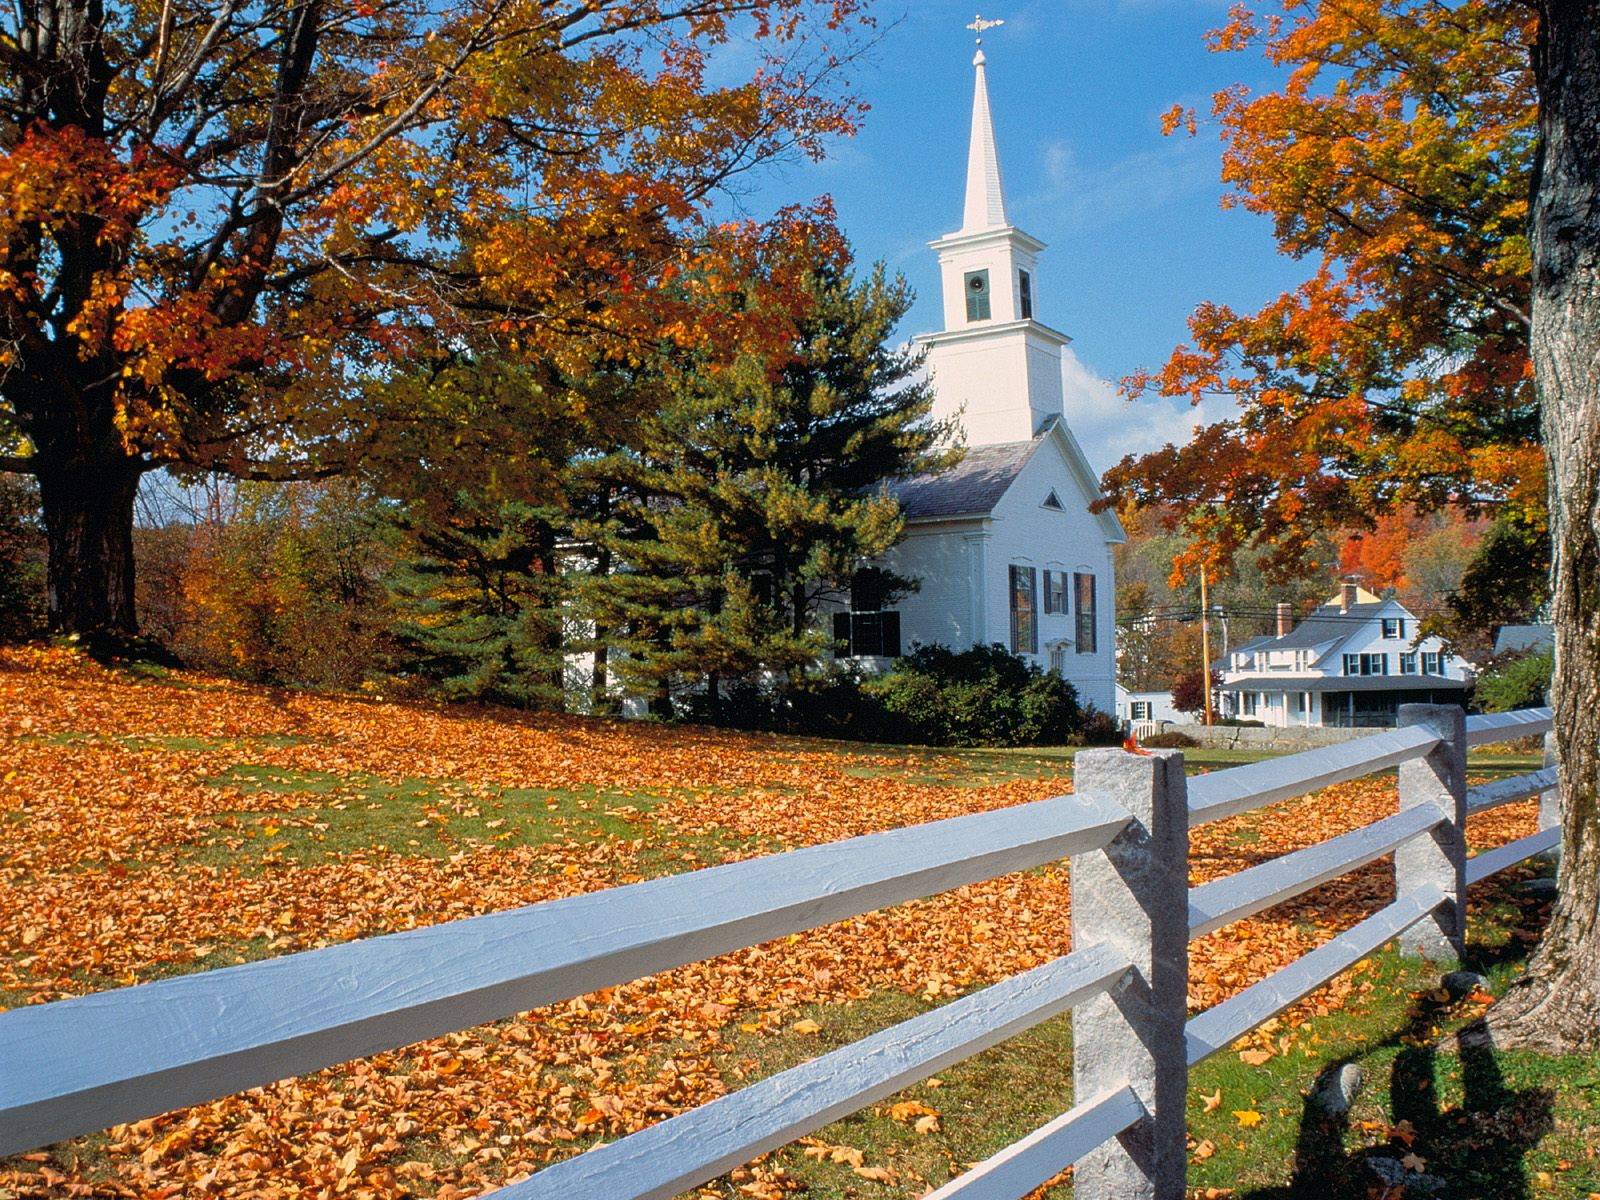 Autumn New England6 New England Fall Desktop 1600x1200 Download Hd Wallpaper Wallpapertip